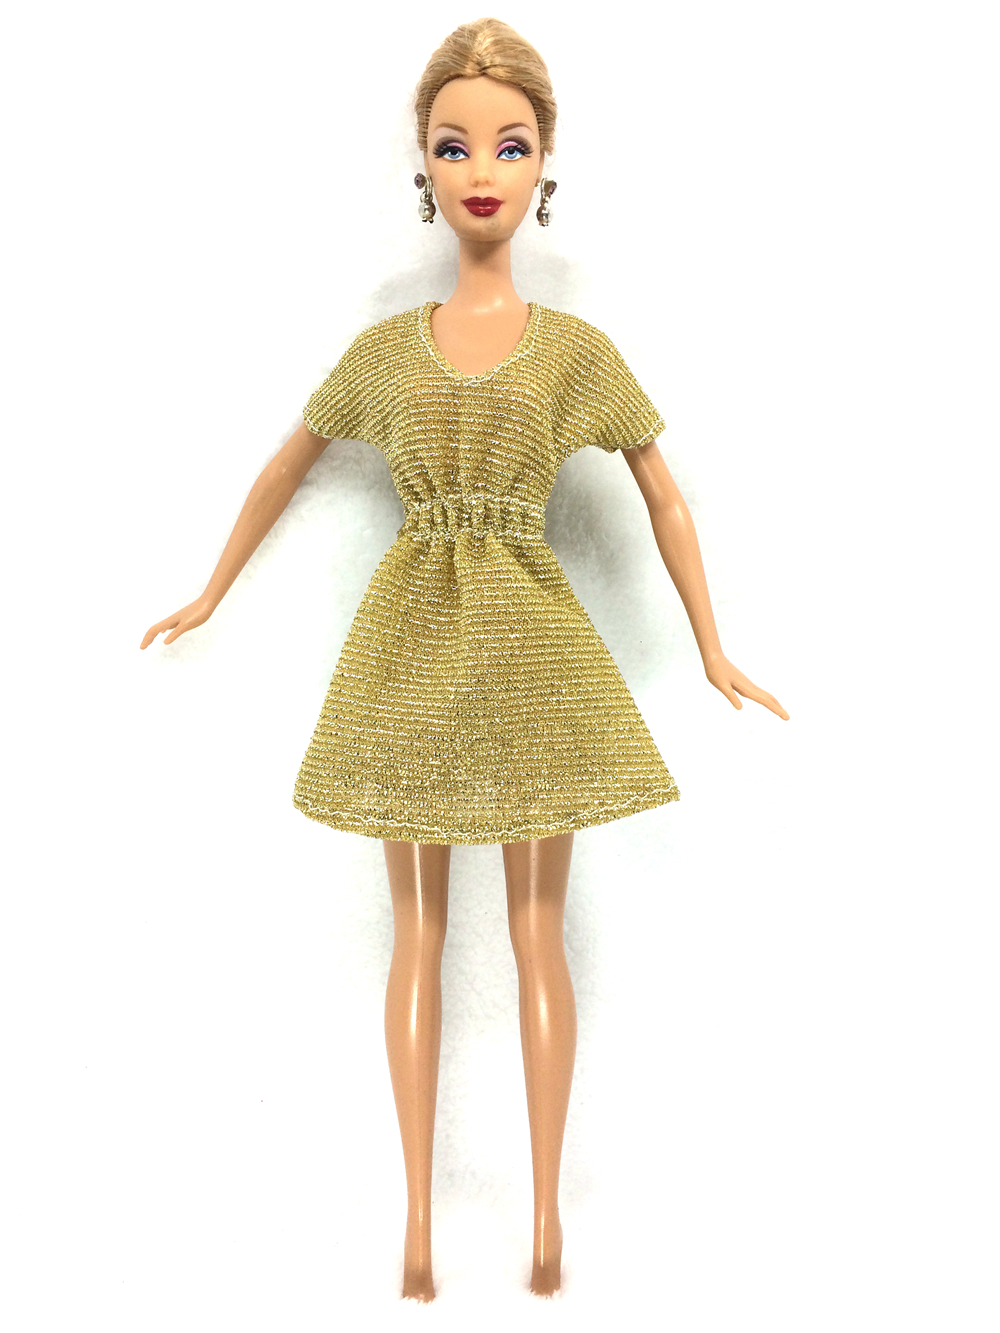 NK 2017 Newest Doll Dress Beautiful Handmade Party ClothesTop Fashion Dress For Barbie Noble Doll Best Child Girls'Gift 059A майка для девочки 28614 059 розовый noble people